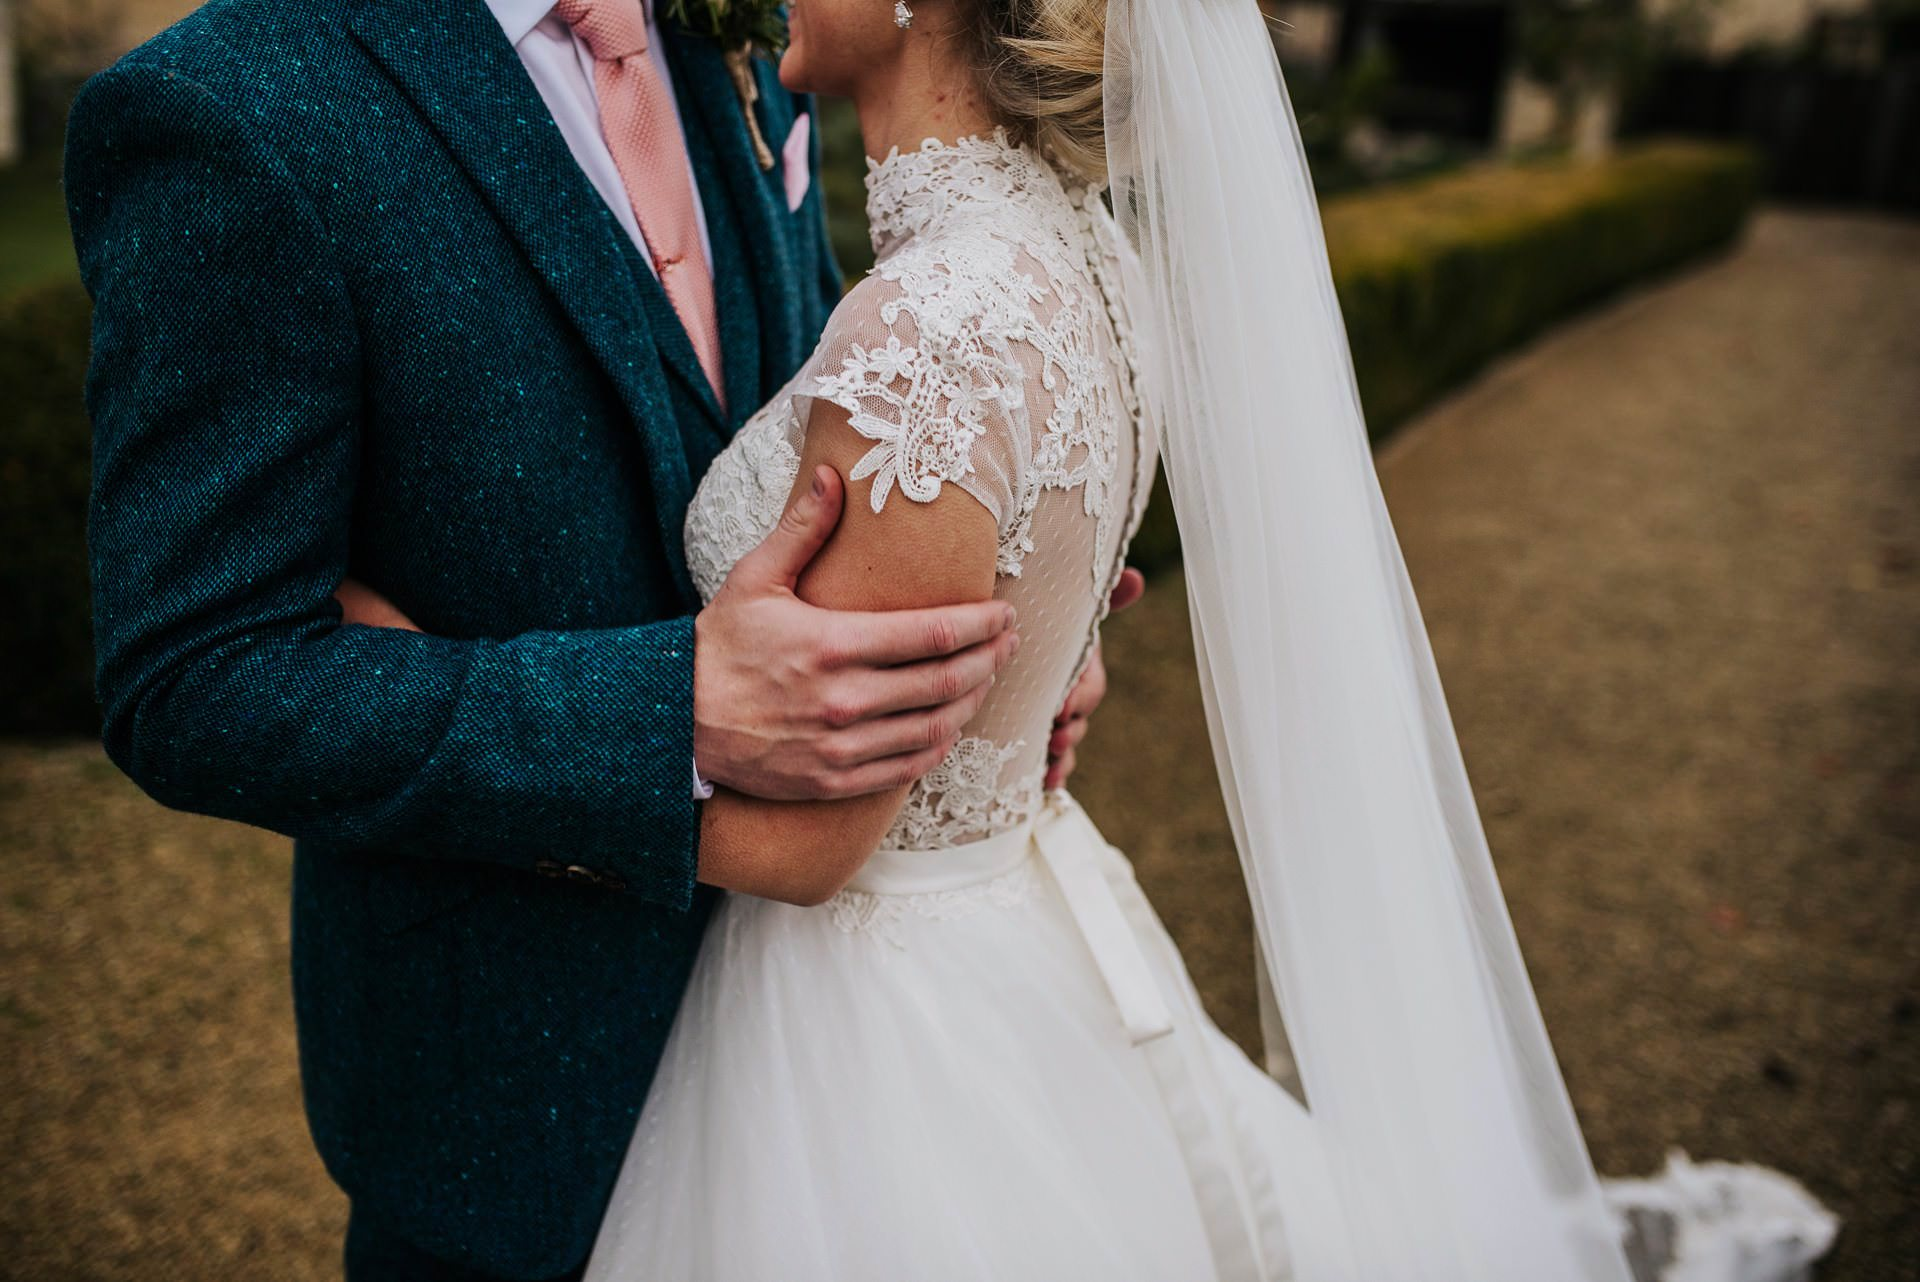 Caswell House Wedding Photographer - Jessica & Chris 15